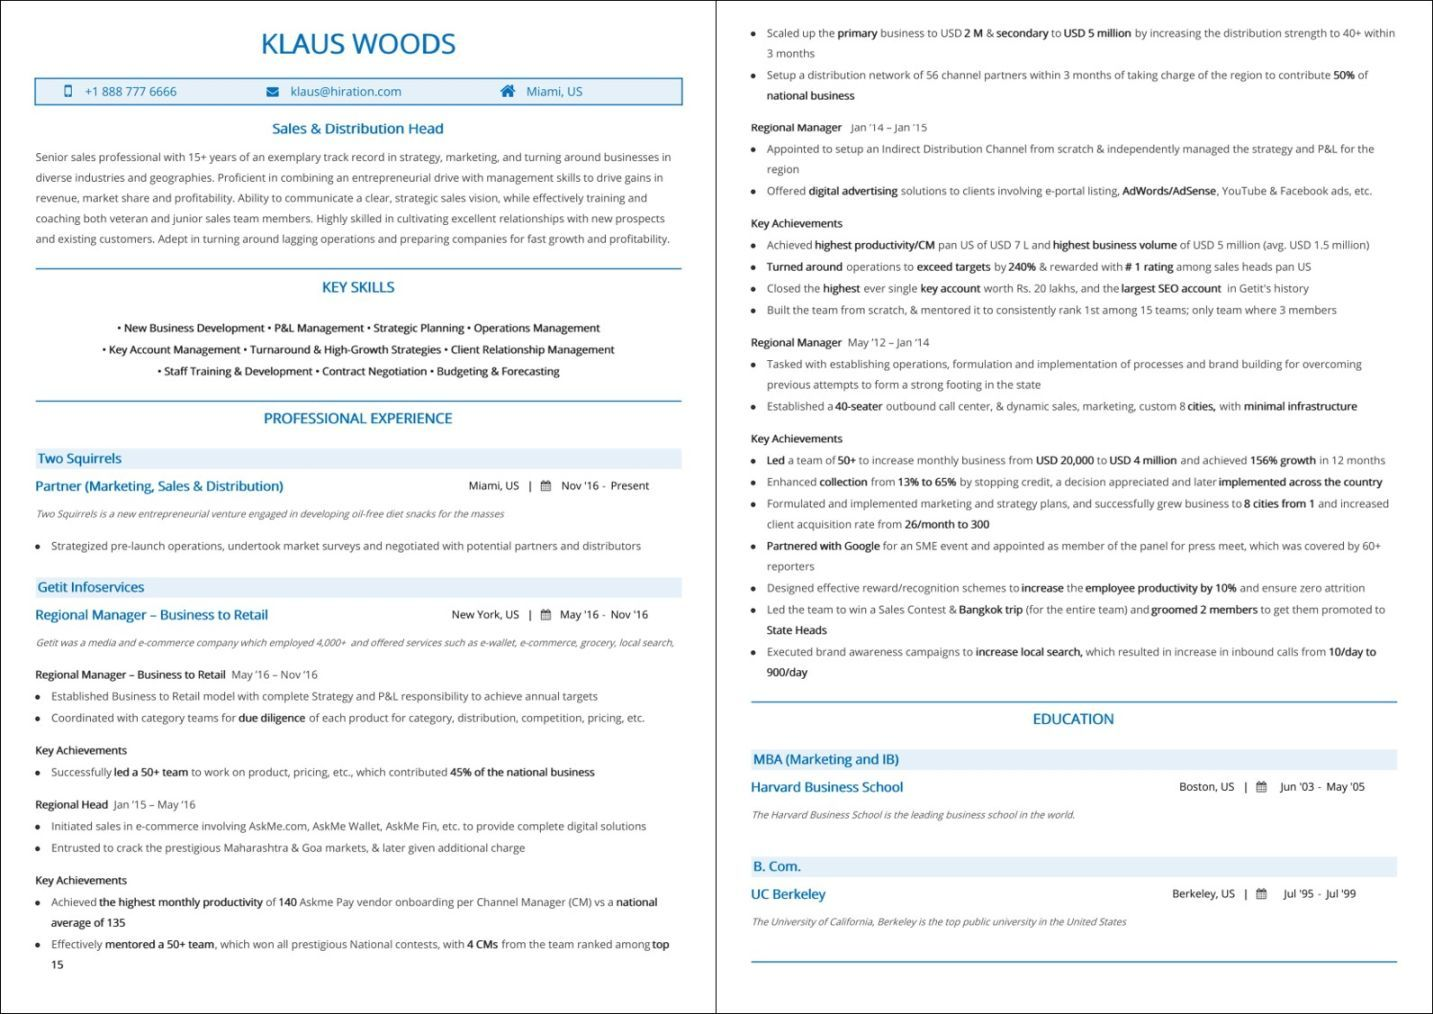 Best Sales Resume: Top 10 Best Sales Resume Templates [2019